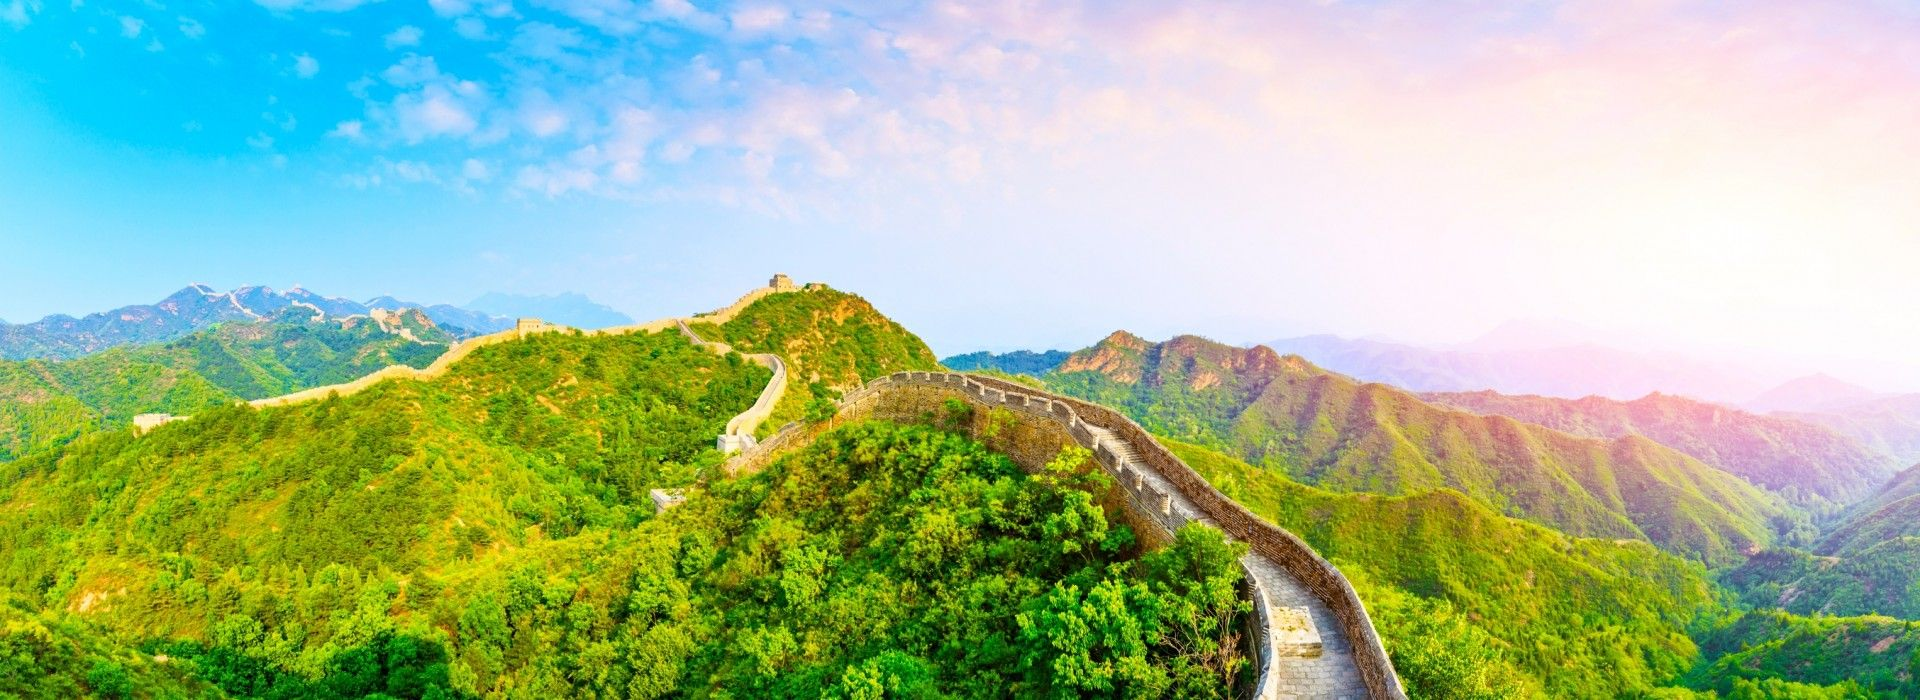 Mountains Tours in China